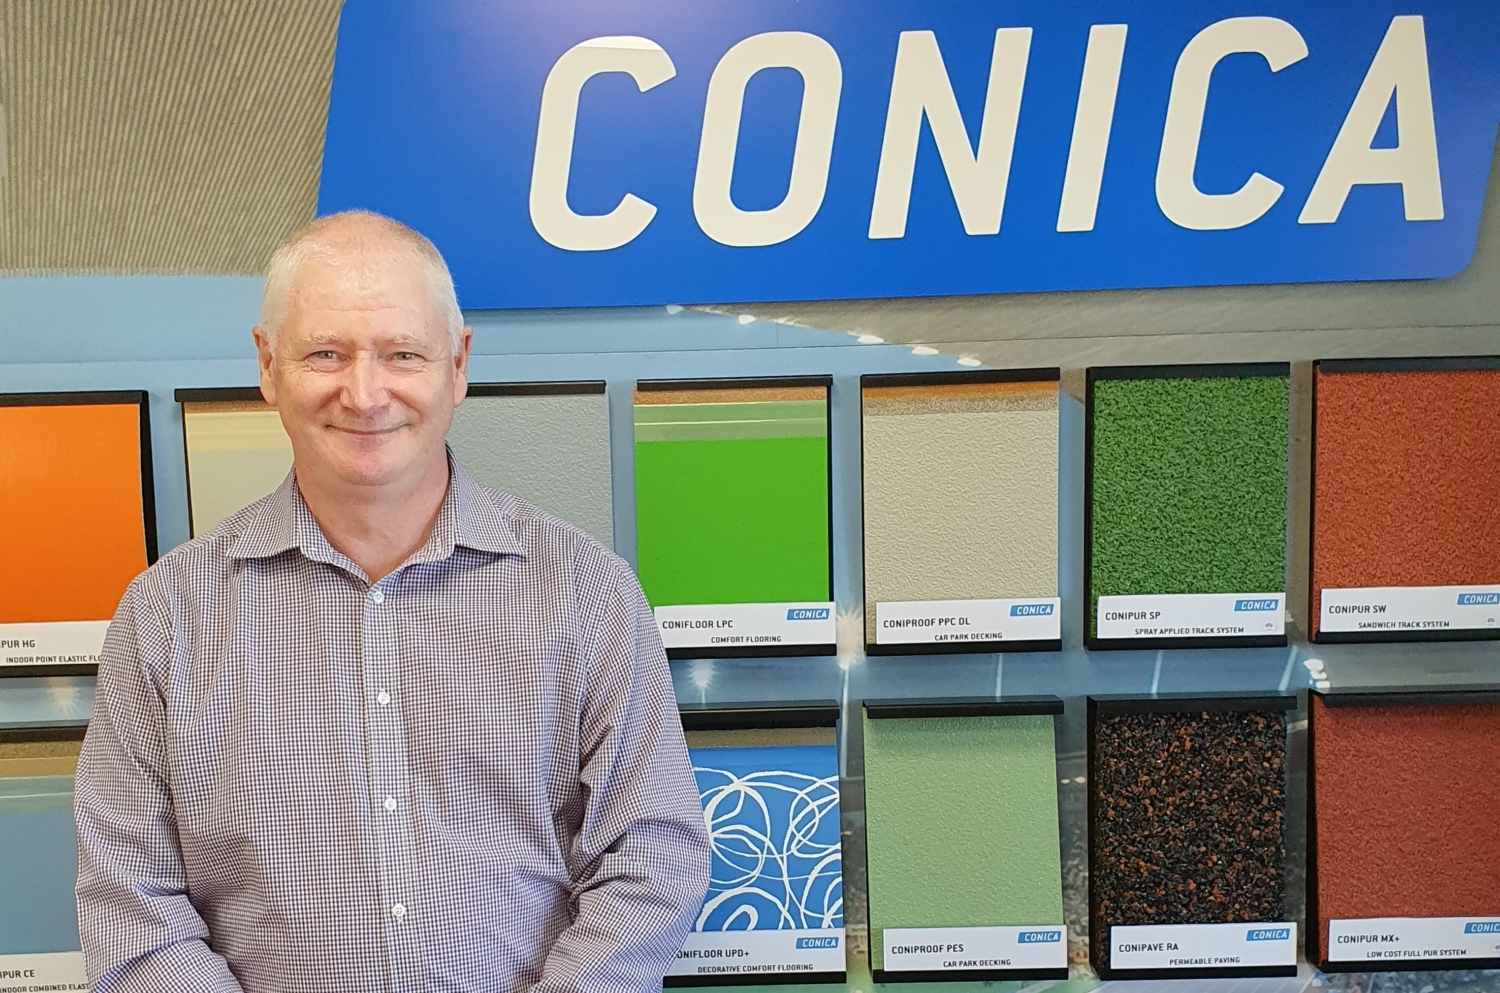 Conica: John Bramwell retires, Mike Hill appointed head of operations